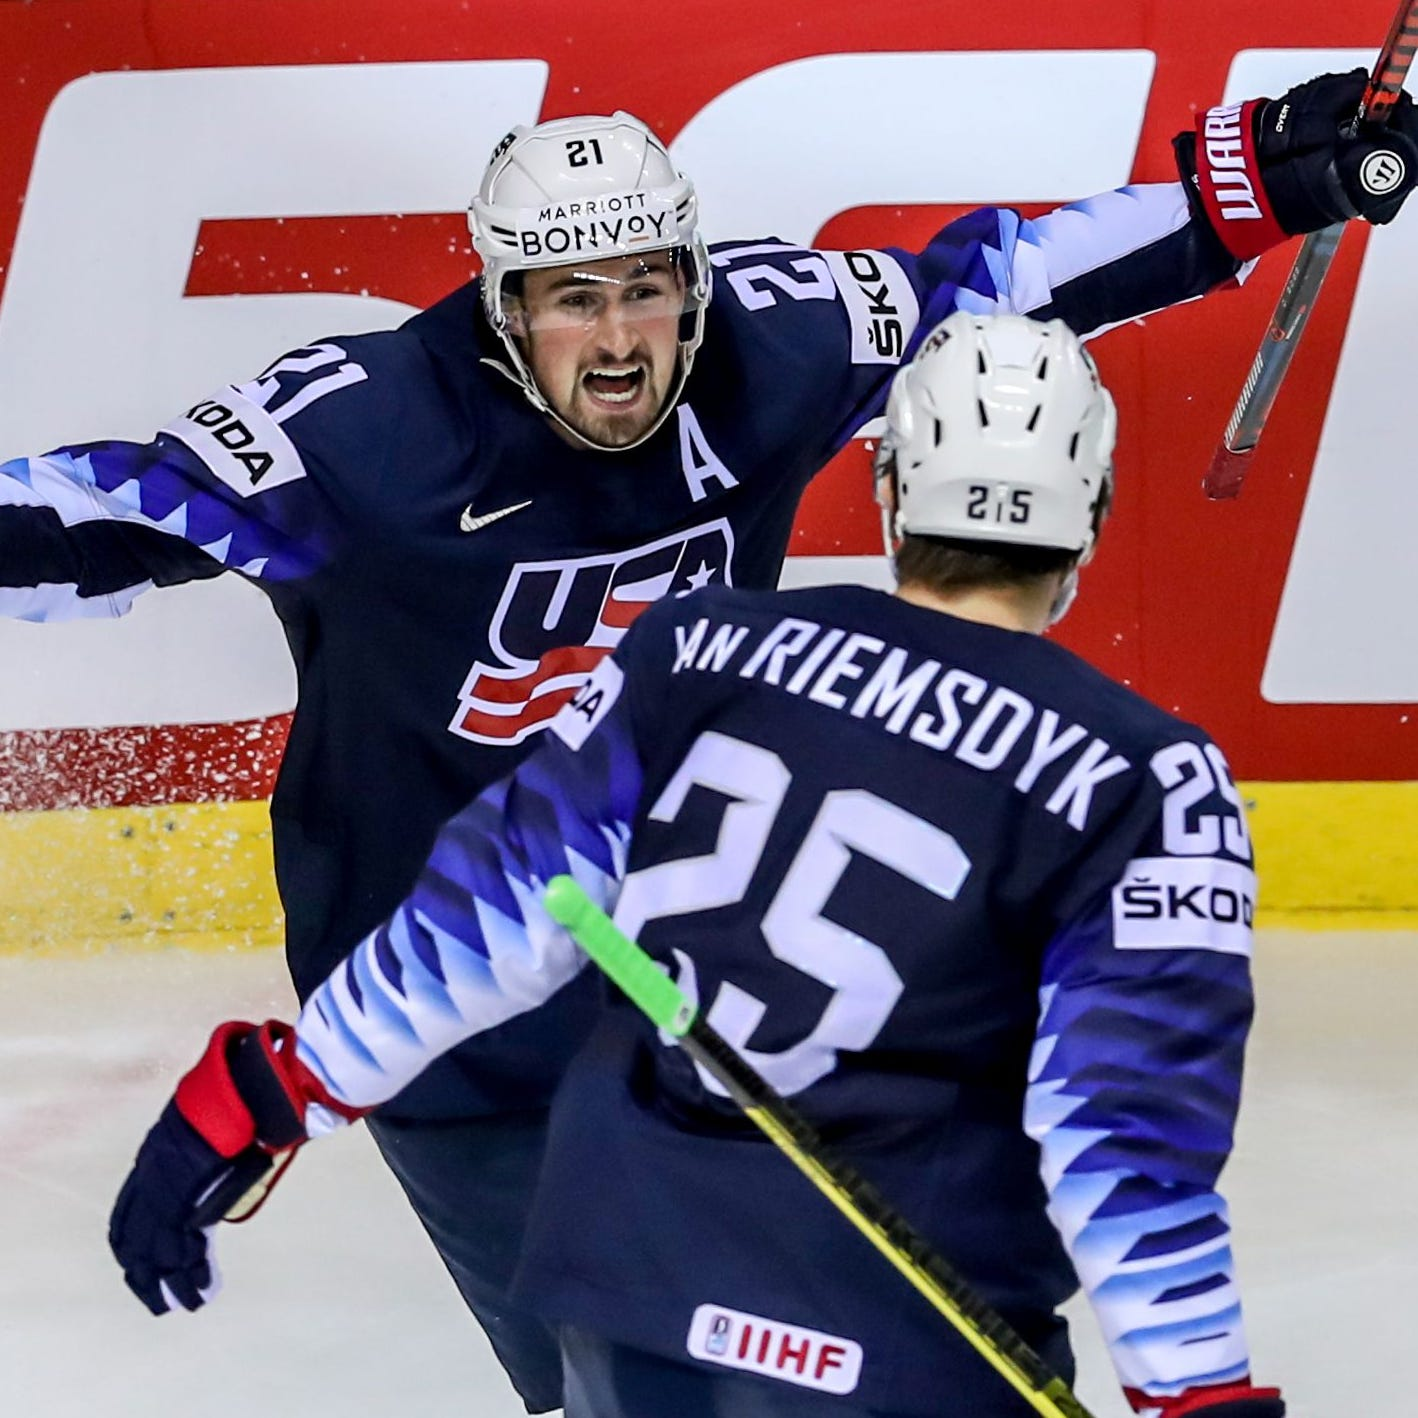 Detroit Red Wings' Dylan Larkin scores another big goal at Worlds